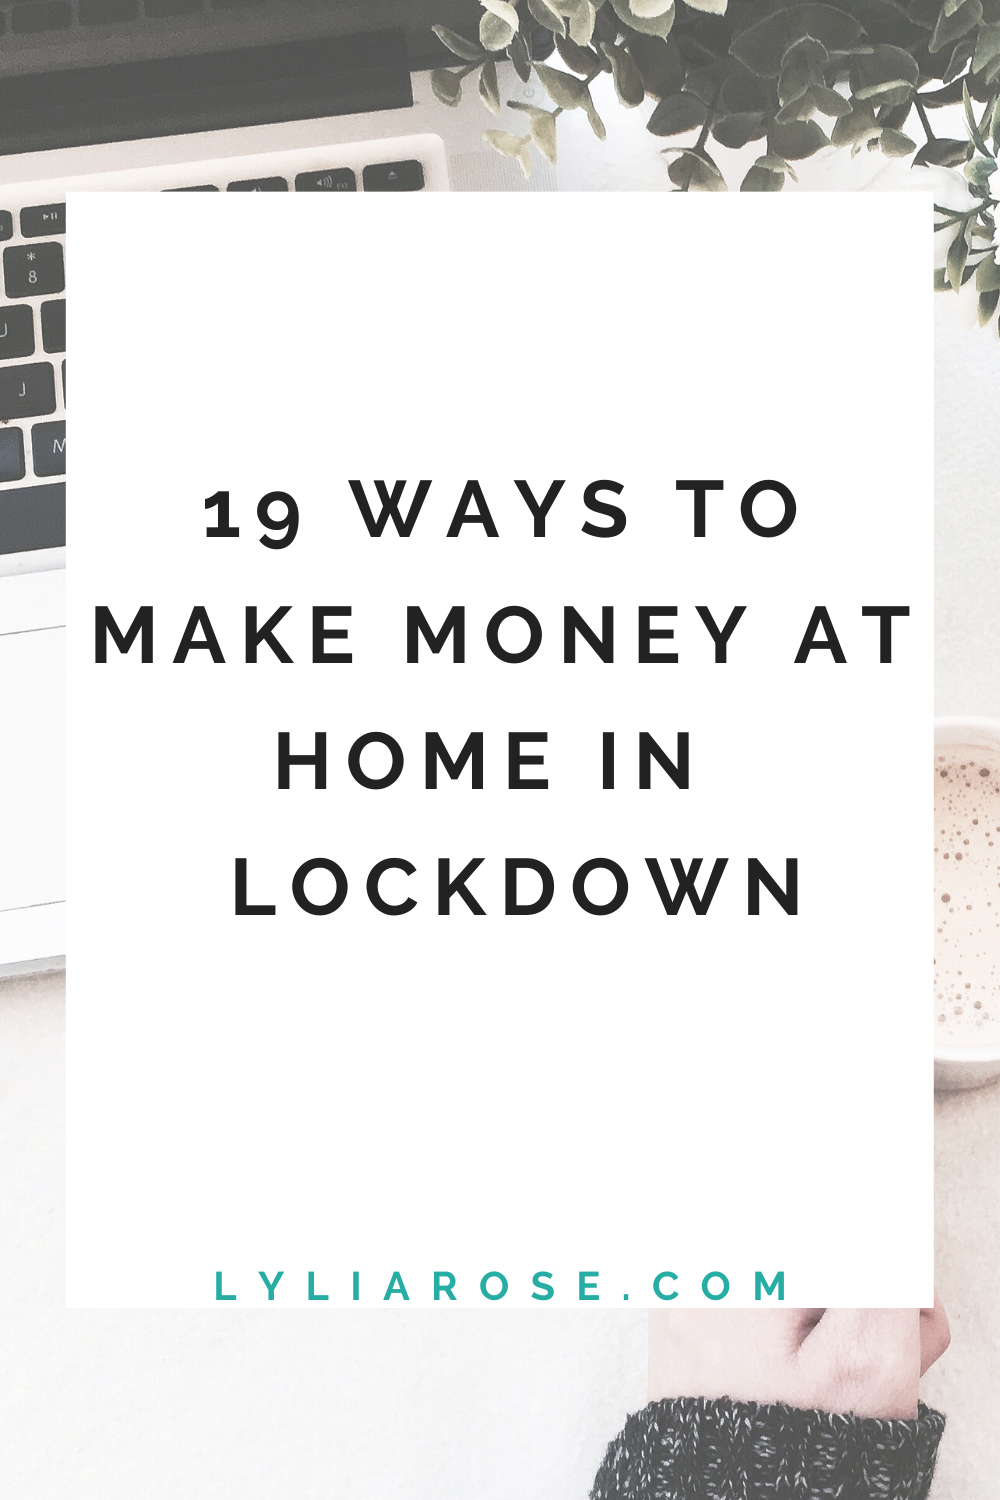 19 ways I've made money from home during the coronavirus lockdown (4)